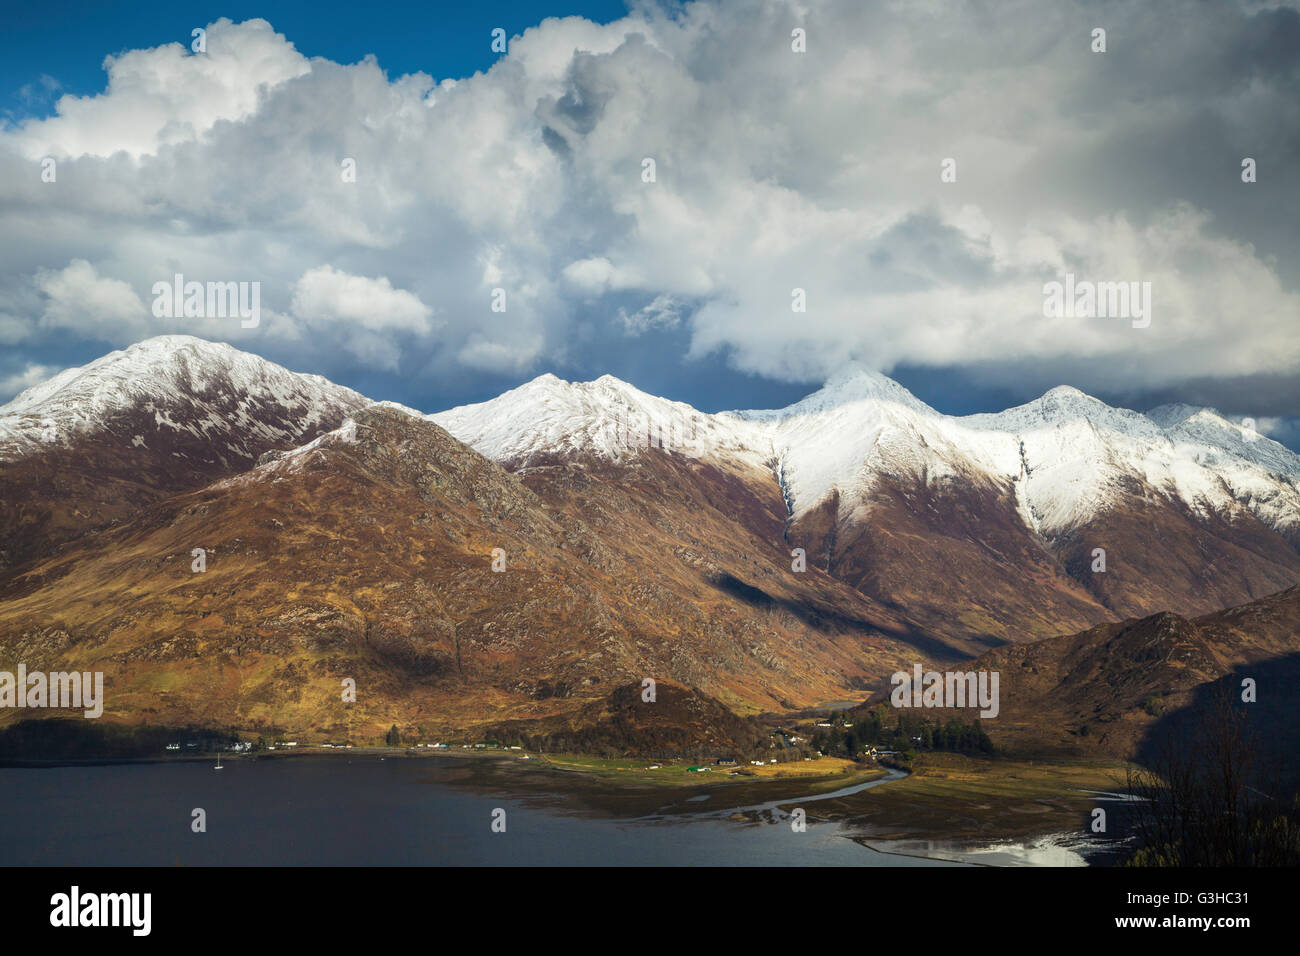 Snow capped summits of the Five Sisters of Kintail tower over Loch Duich, Western Highlands, Scotland - Stock Image